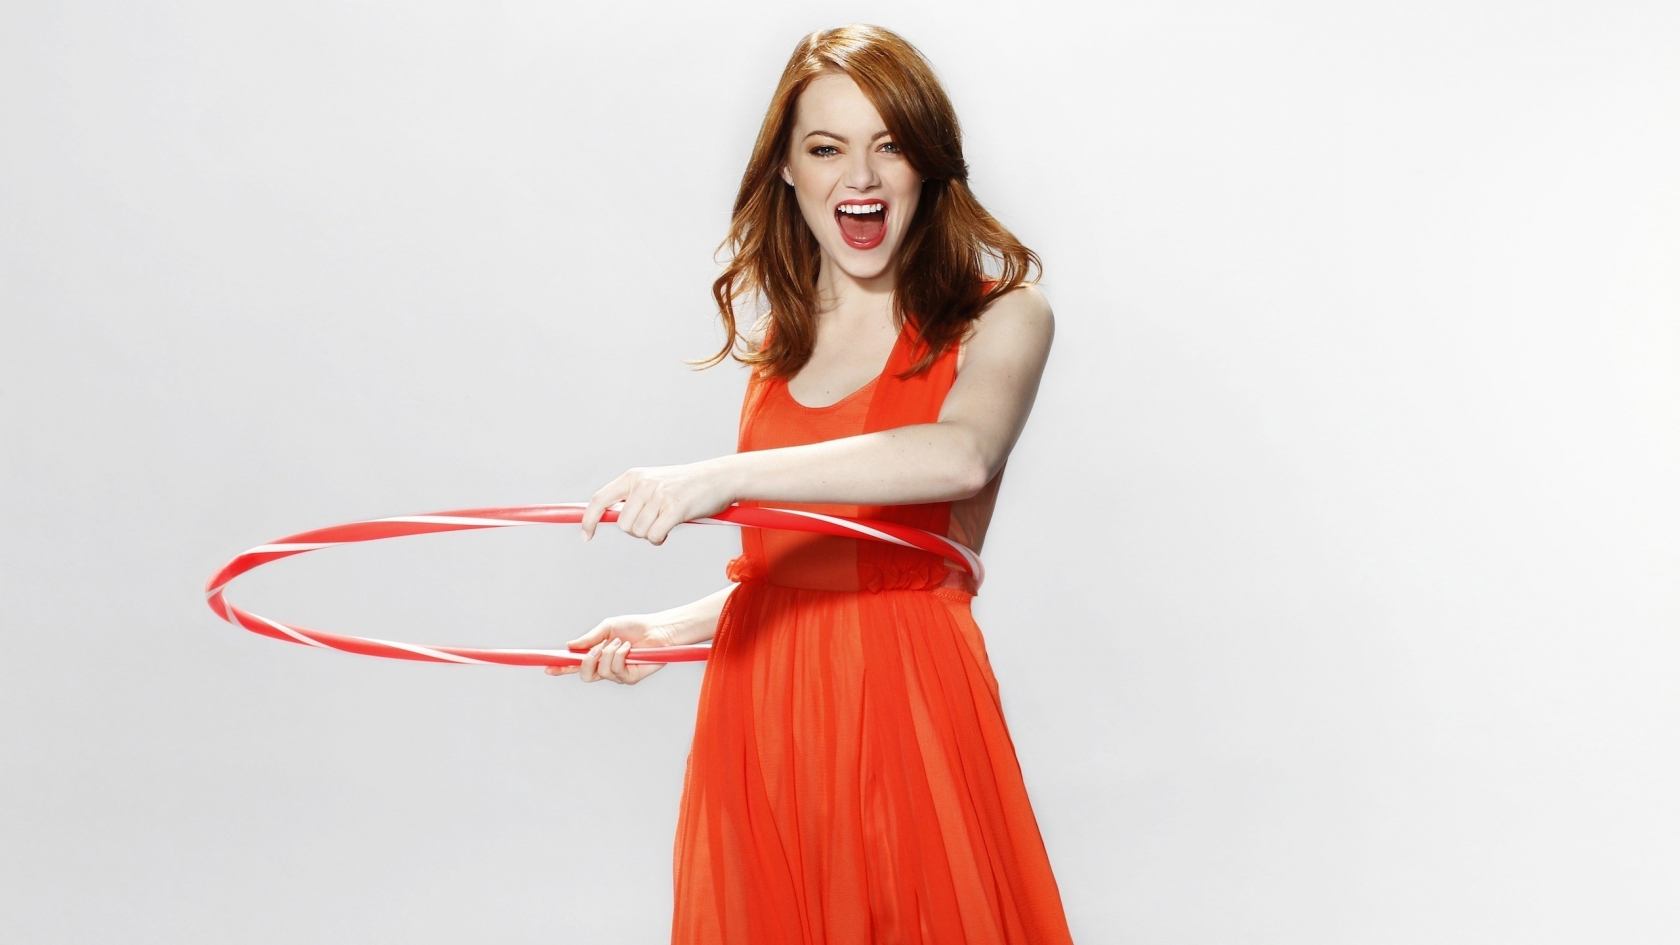 Happy Emma Stone for 1680 x 945 HDTV resolution